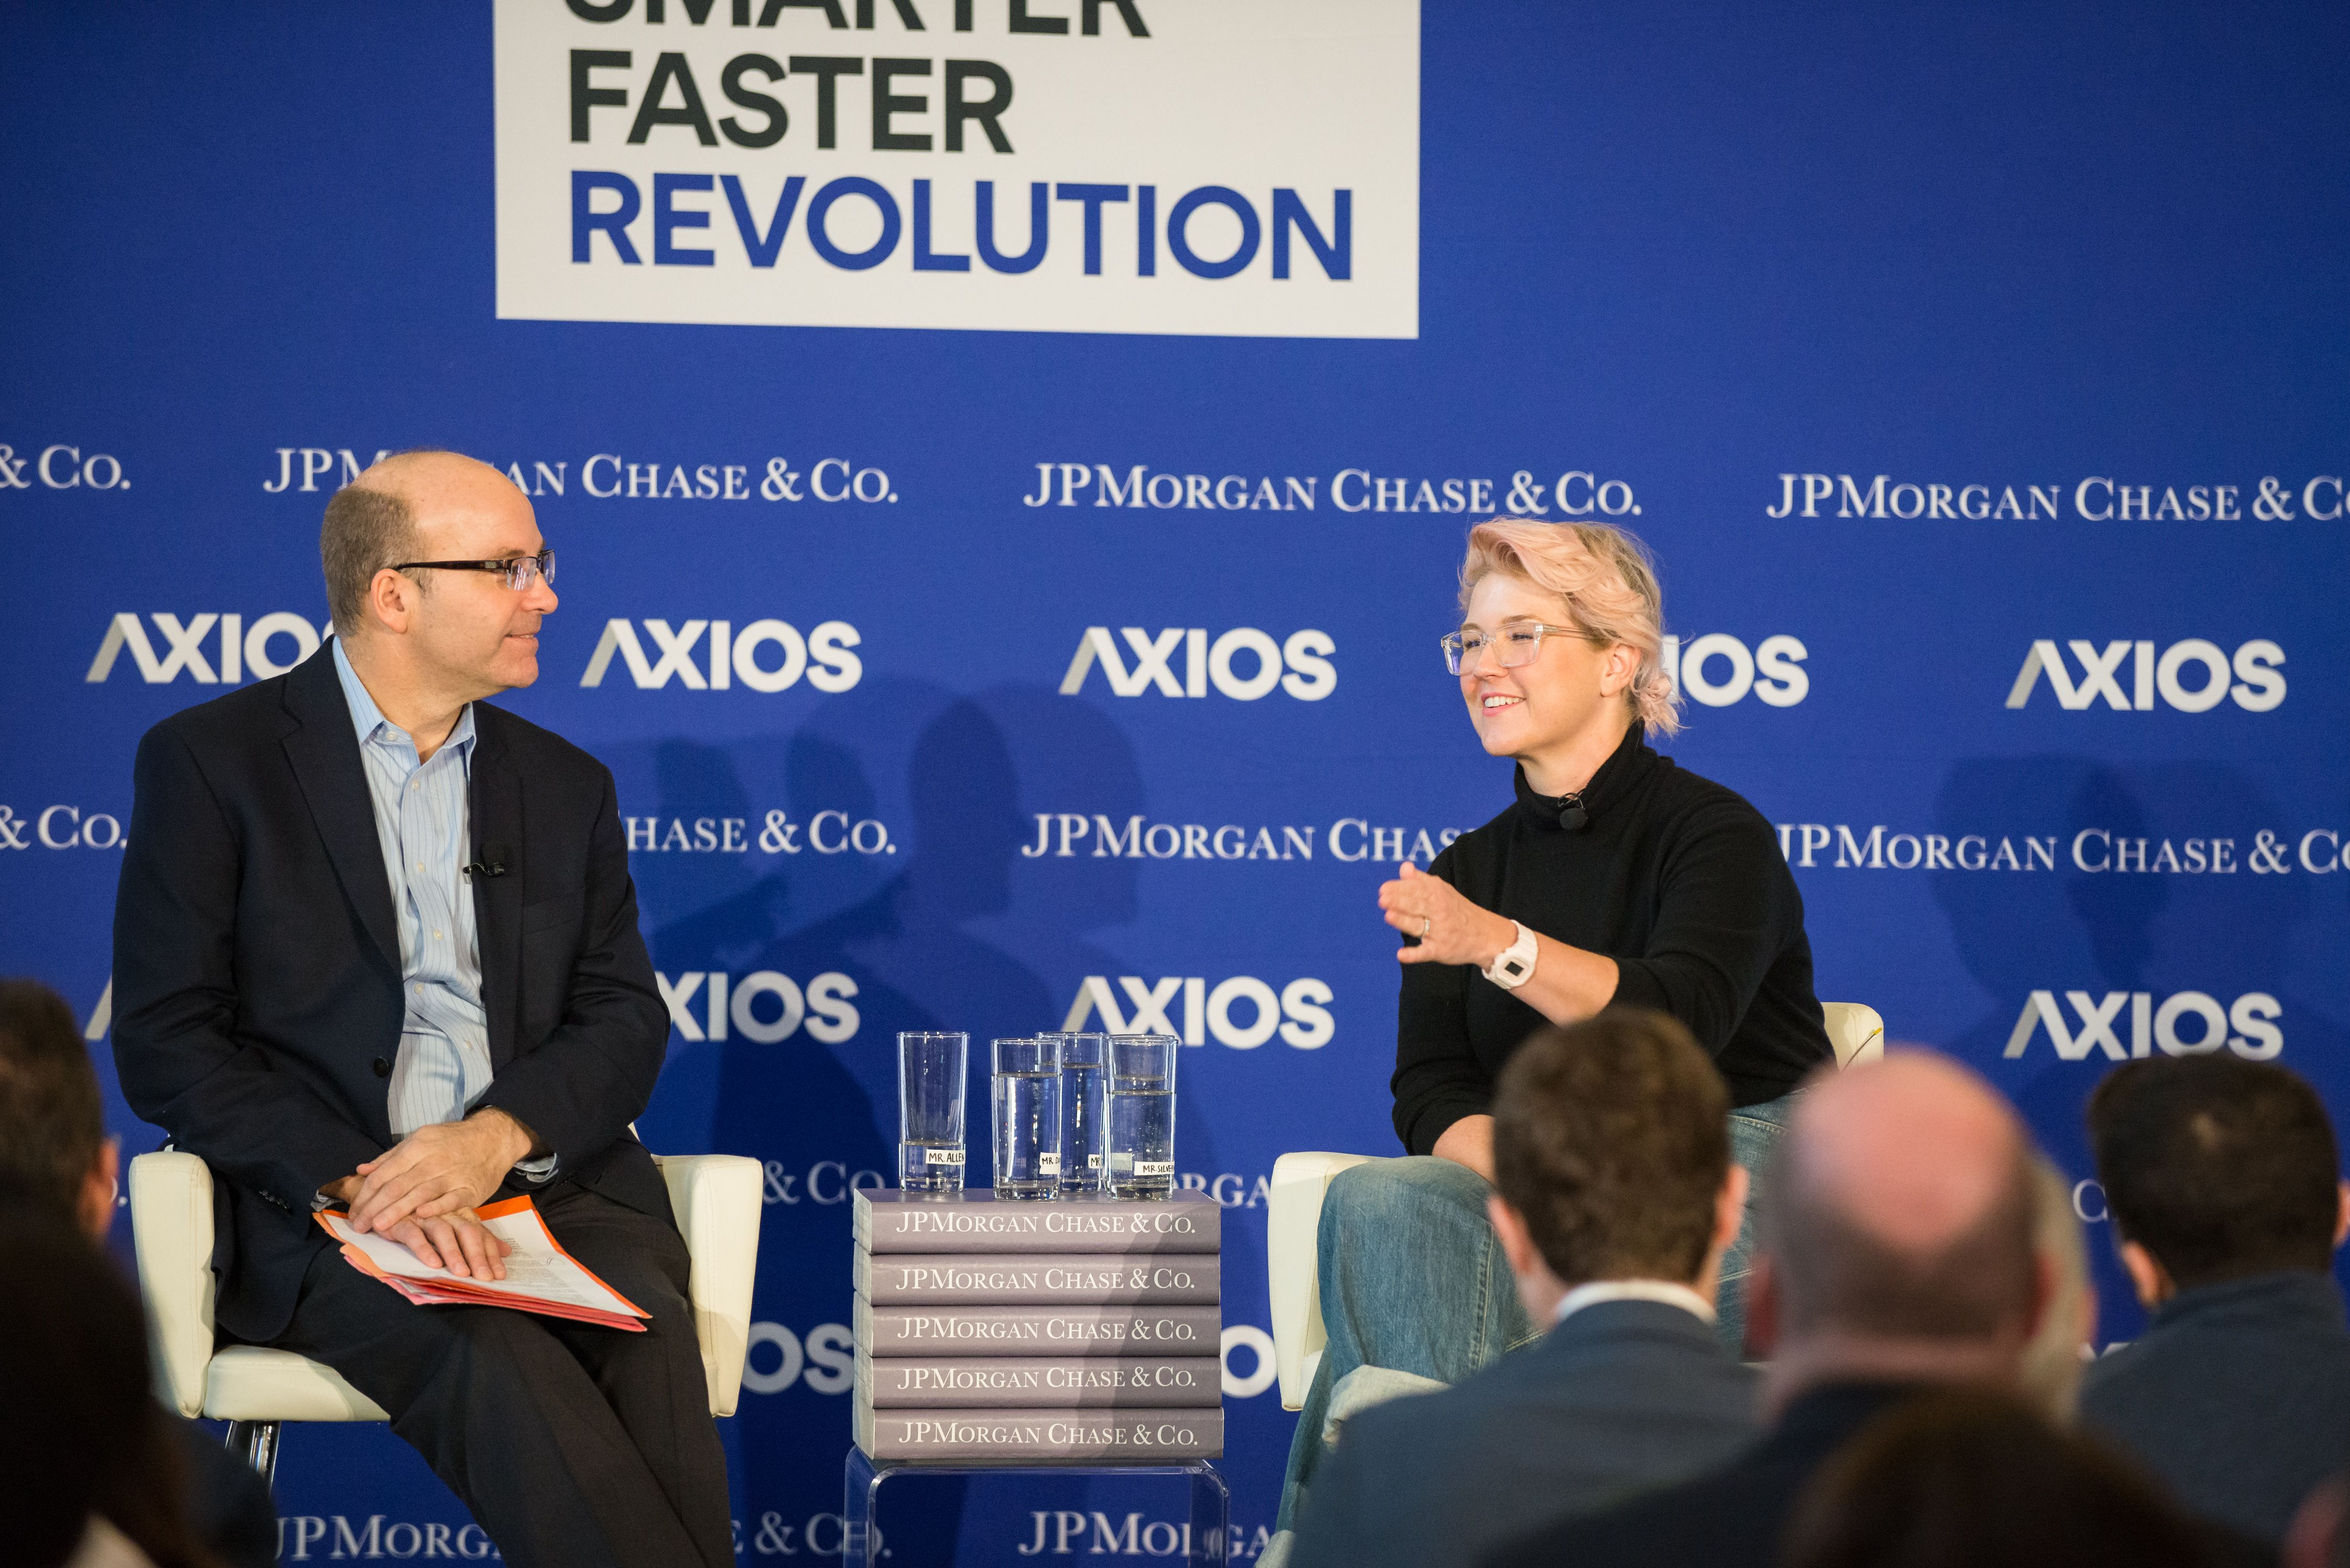 Mike Allen and Jeni Britton Bauer in conversation on the Axios stage